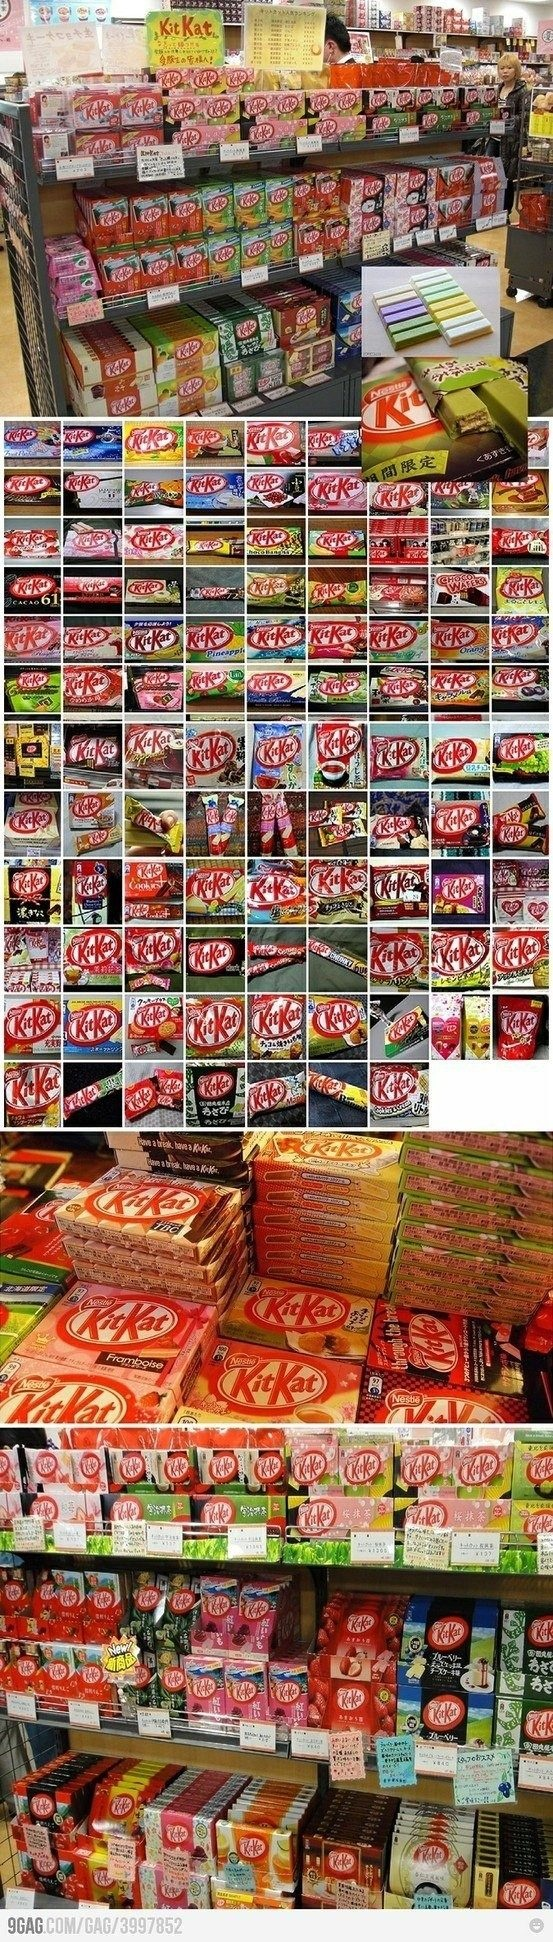 AHHH~ Look at all these Kit Kats!!! I love love love Kit Kats!!